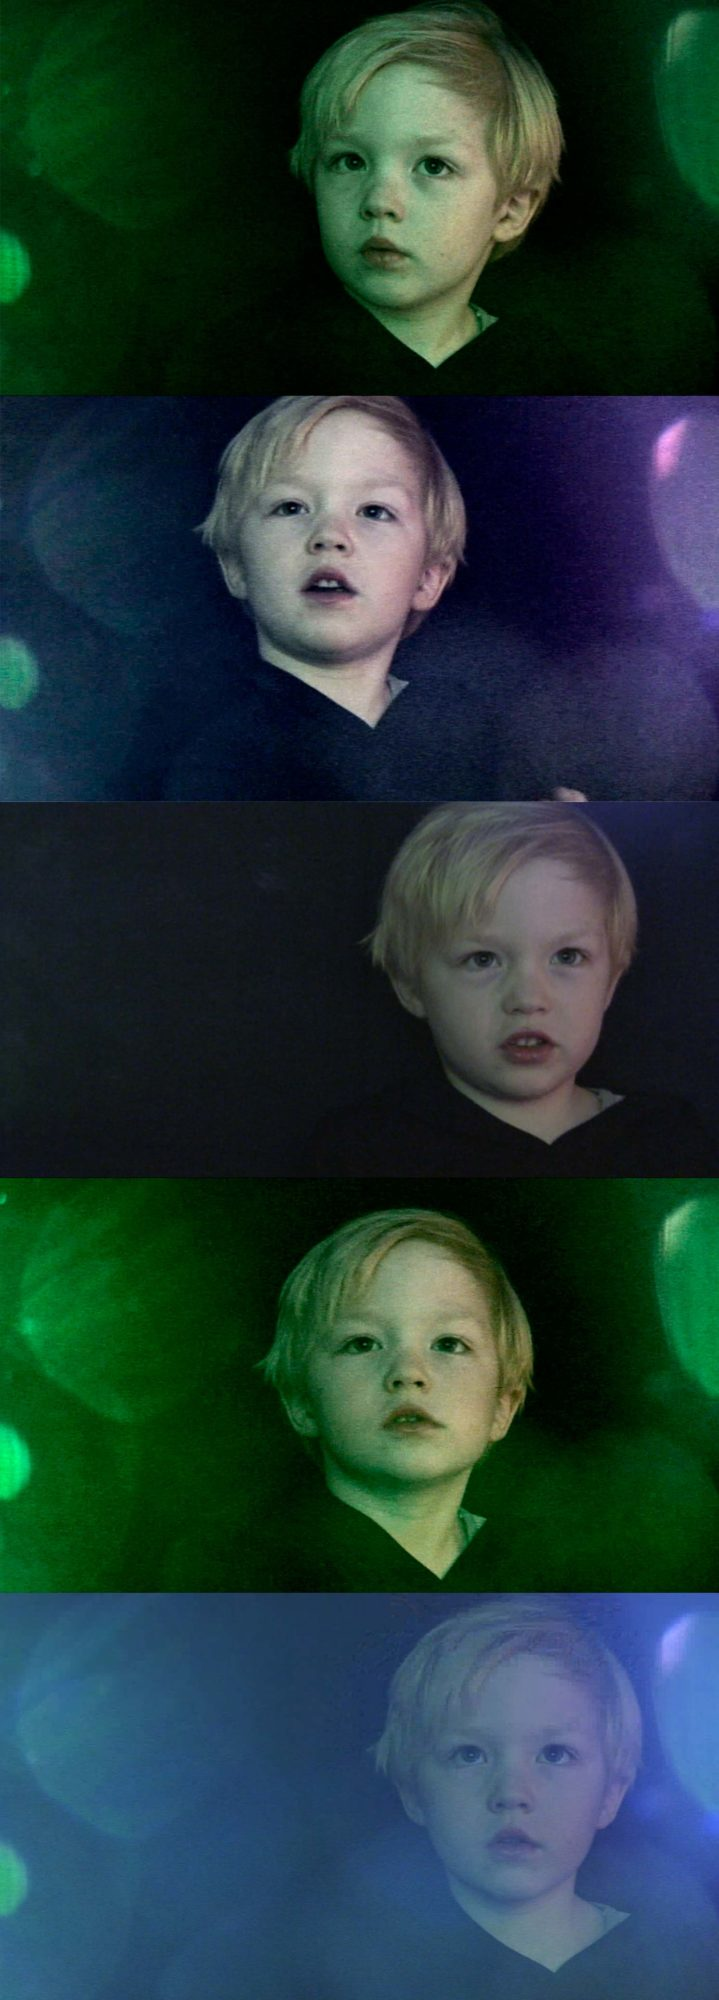 sequence of boy with various expressions on dark background